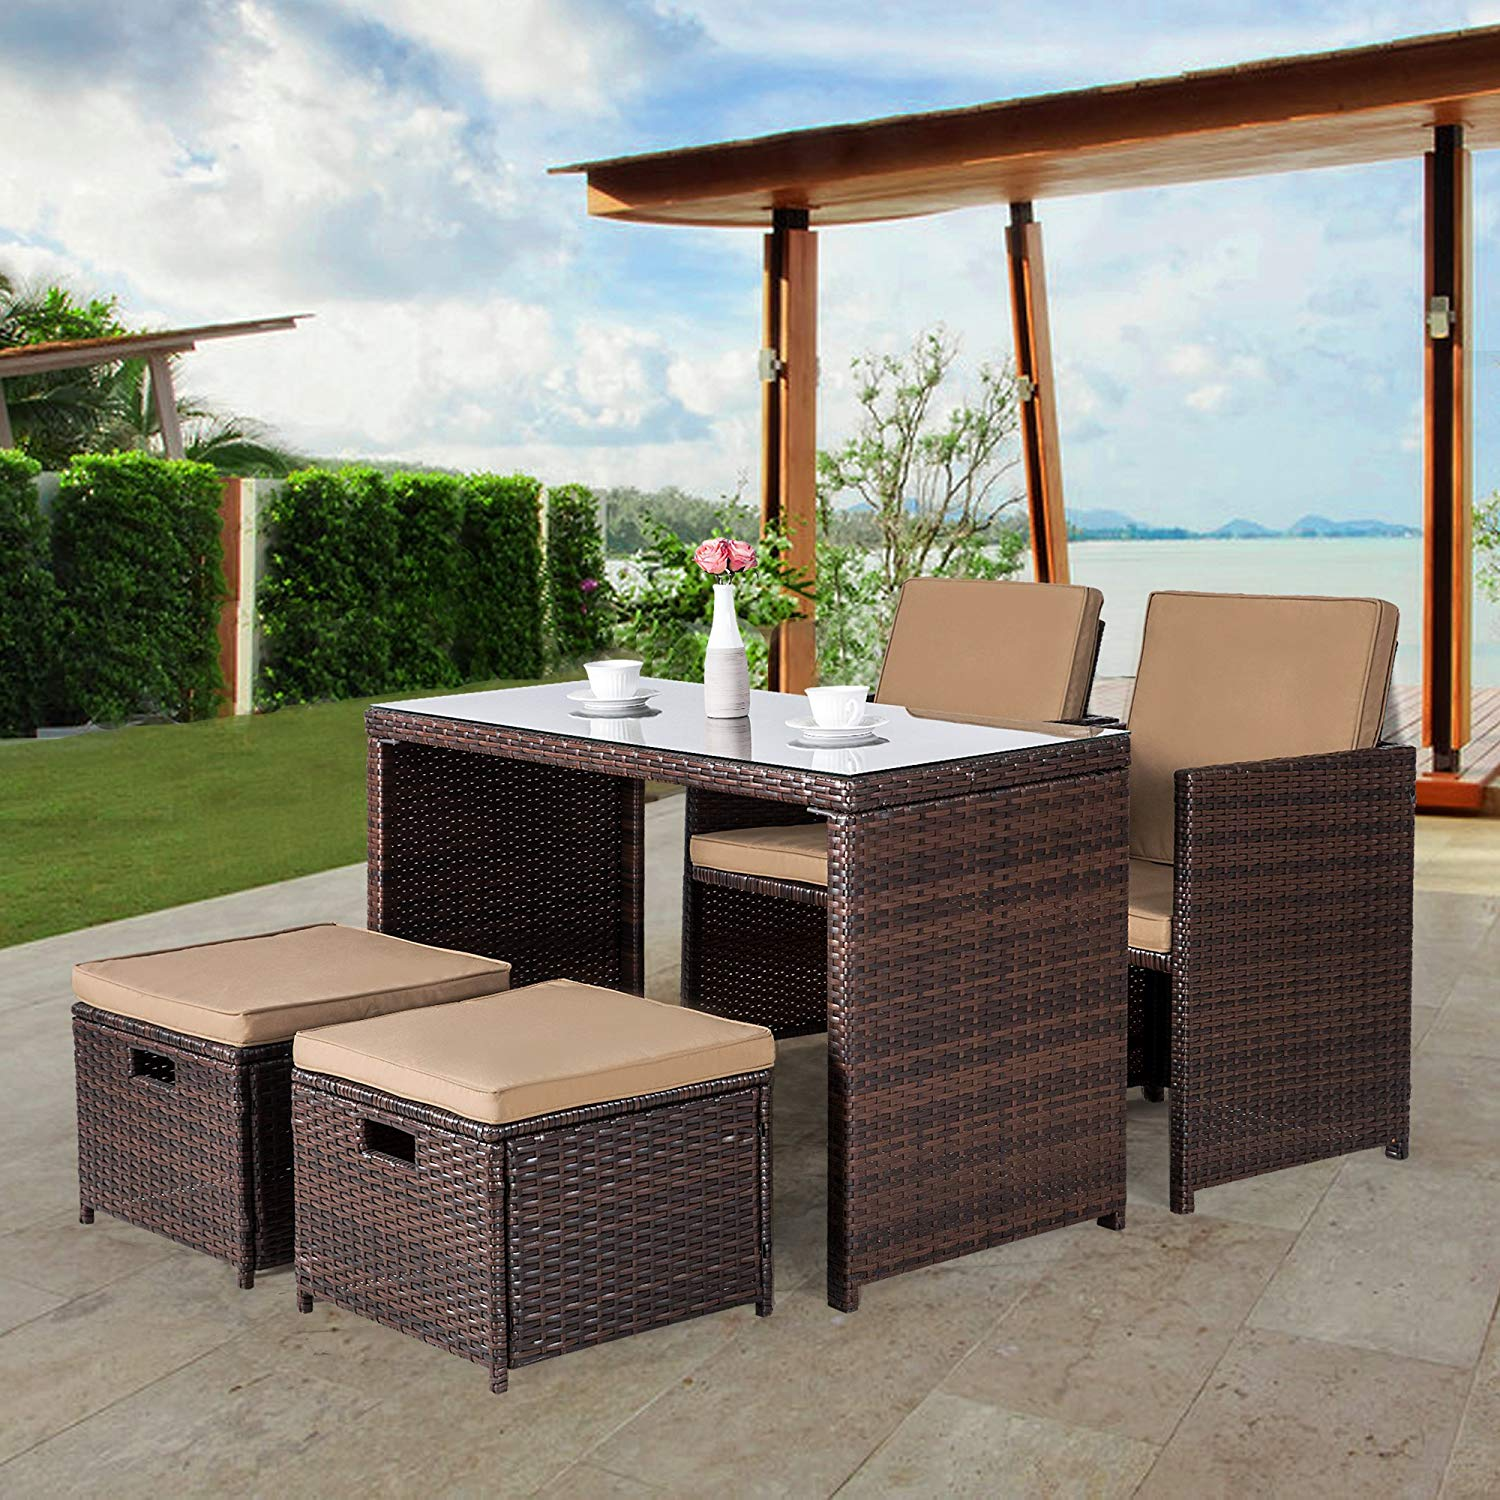 Cloud Mountain Outdoor 5 Piece Rattan Wicker Furniture Bar Set Cushioned Patio Furniture Set Space Saving Dining Table Dining Sets 1 Dining Table 2 Dining Chair 2 Ottoman, Brown